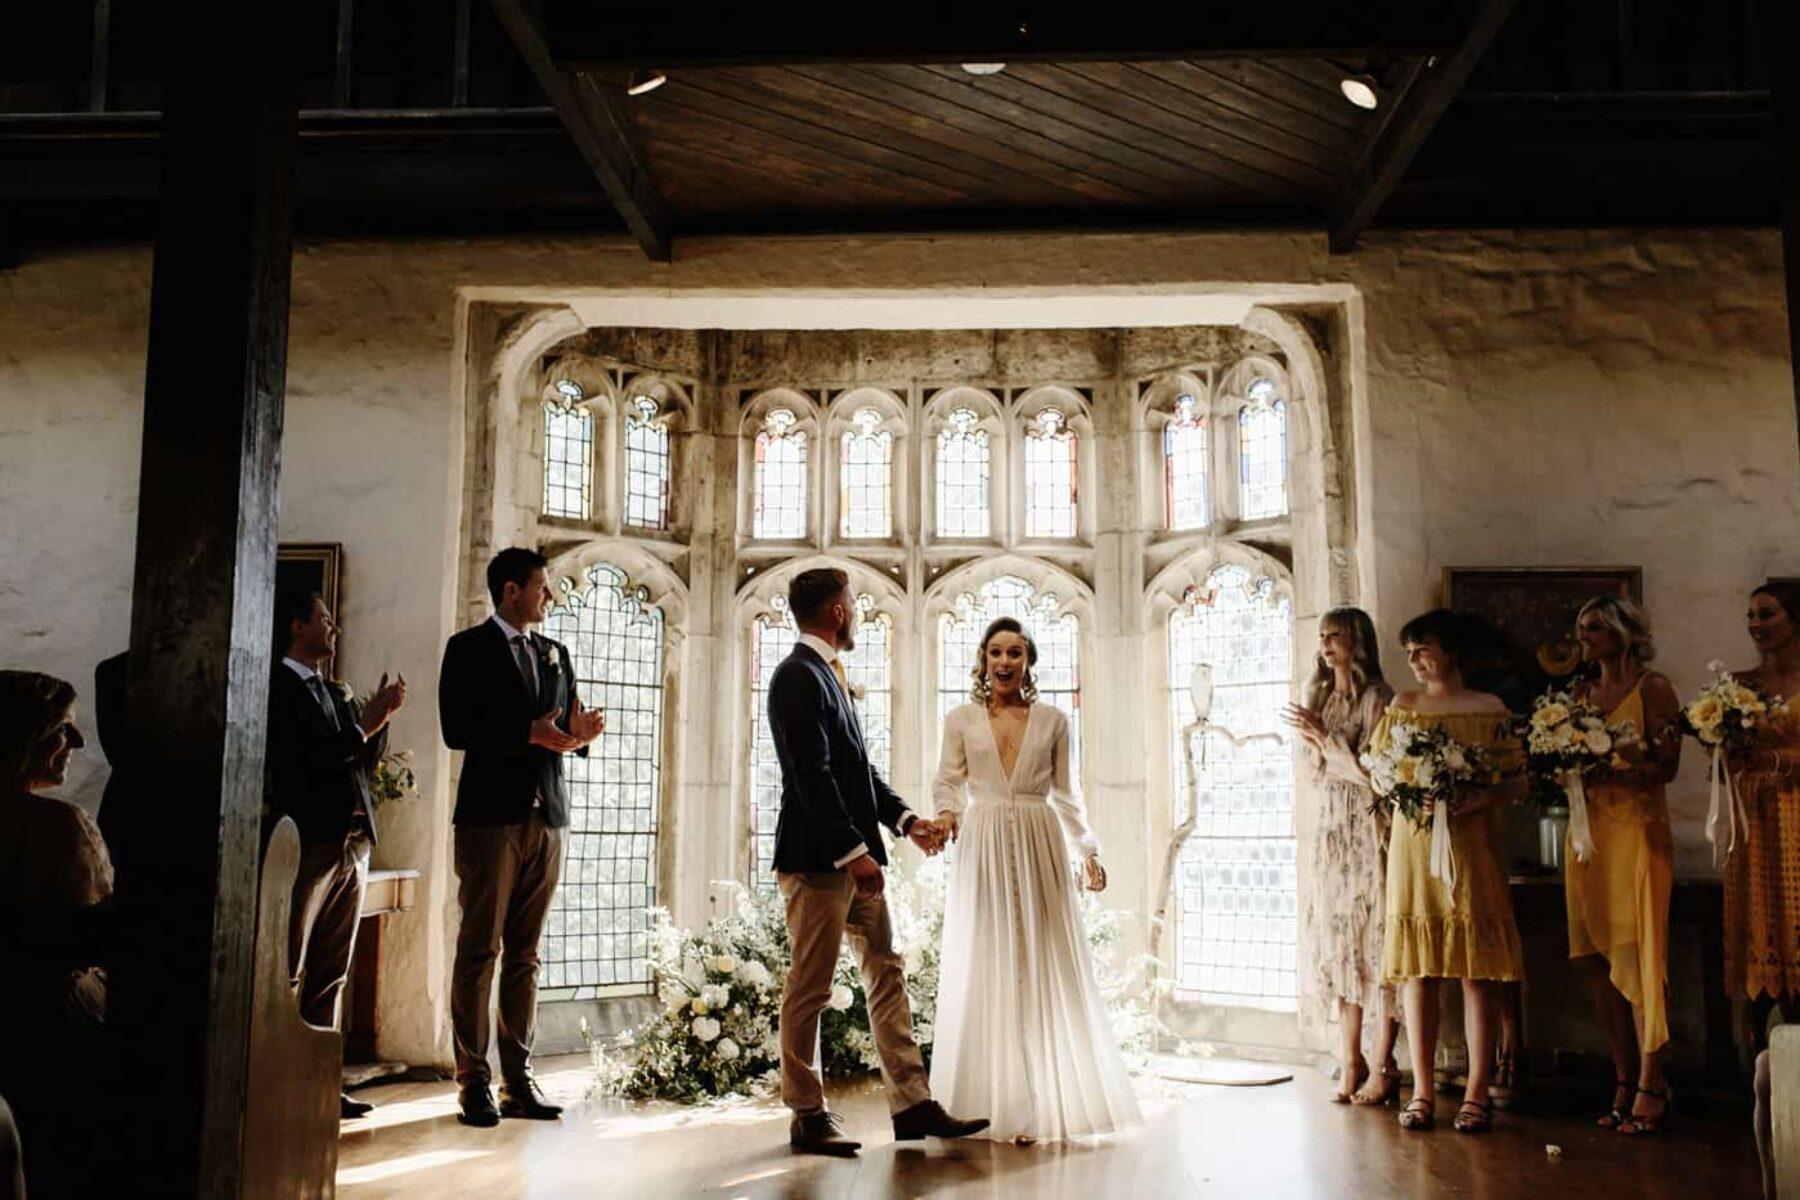 robe-style long sleeve wedding dress by Houghton NYC